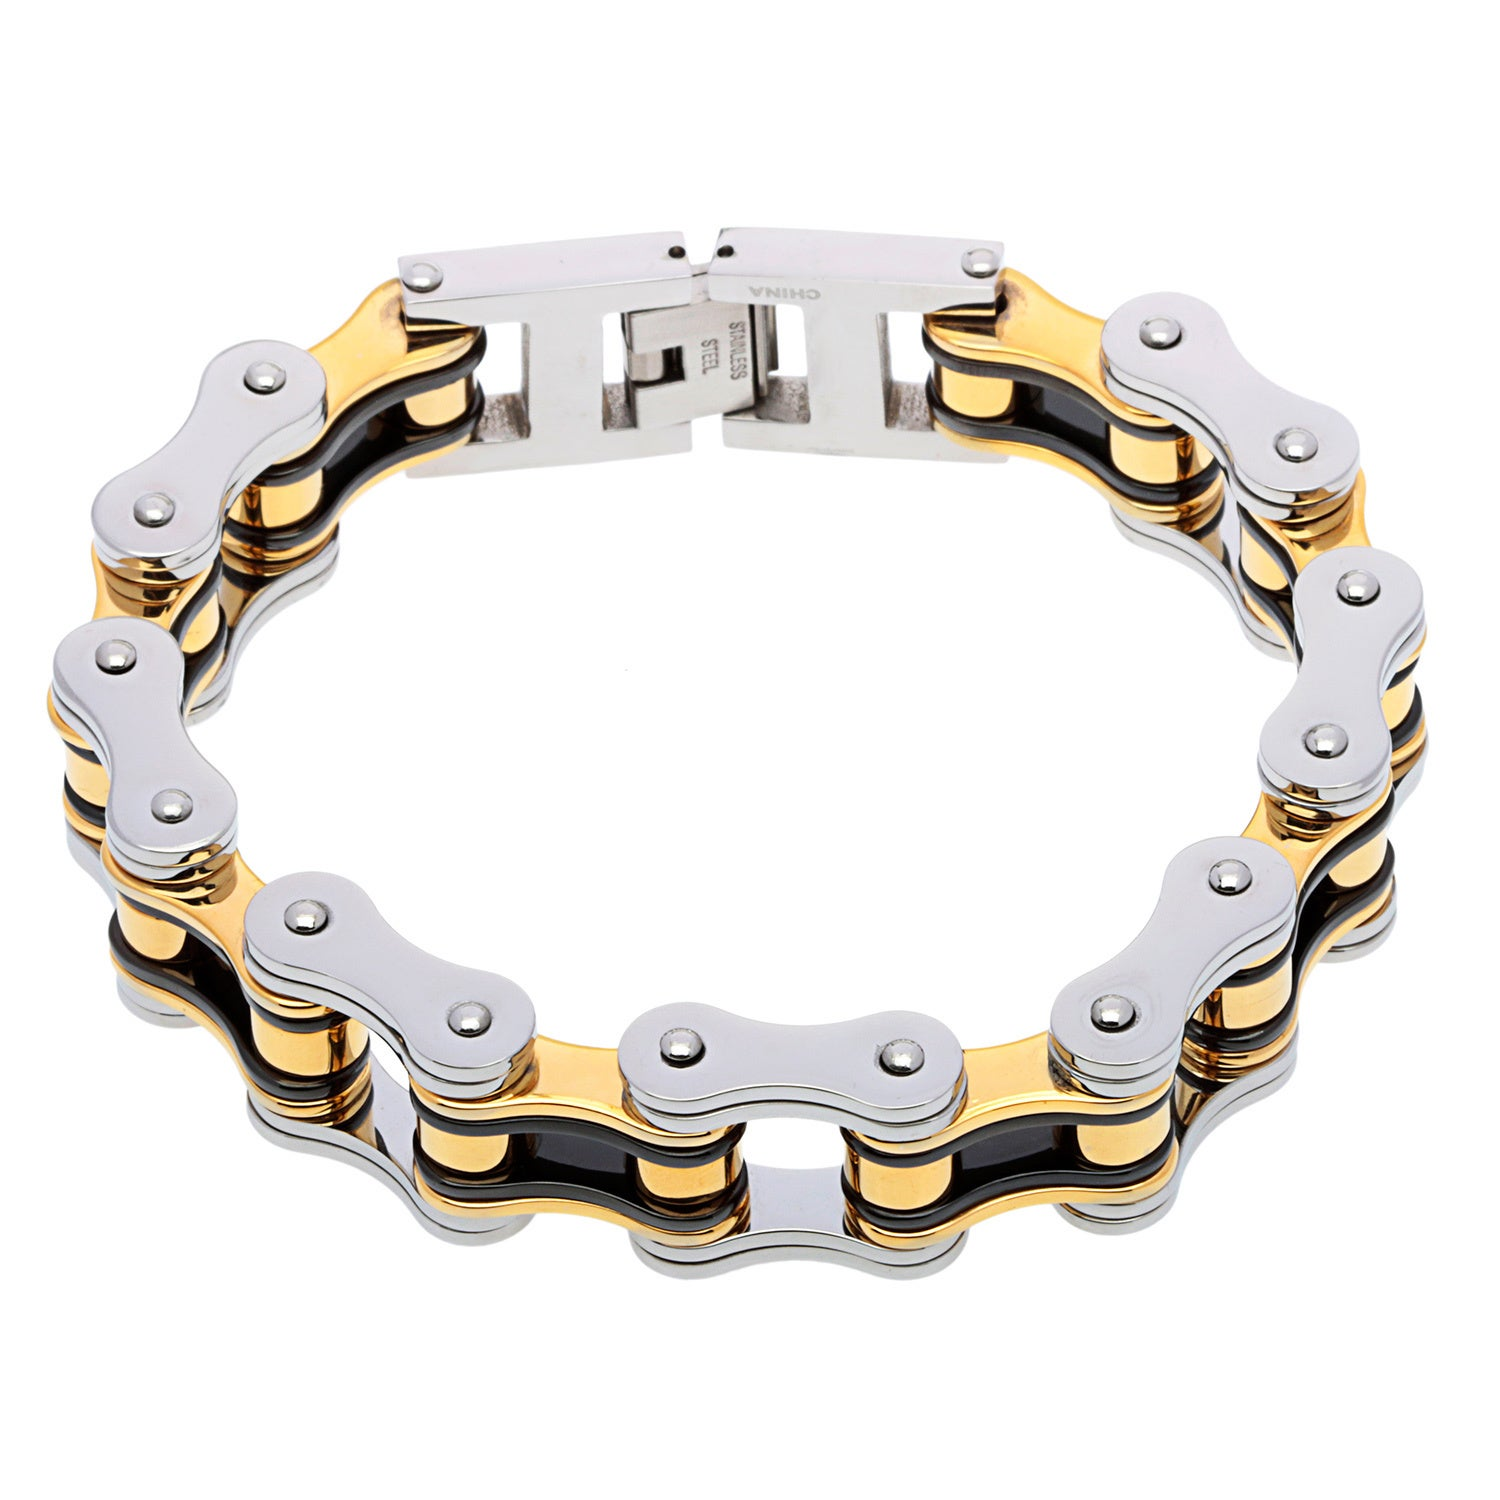 Stainless Steel Bike Chain Bracelet Free Shipping On Orders Over 45 9561374